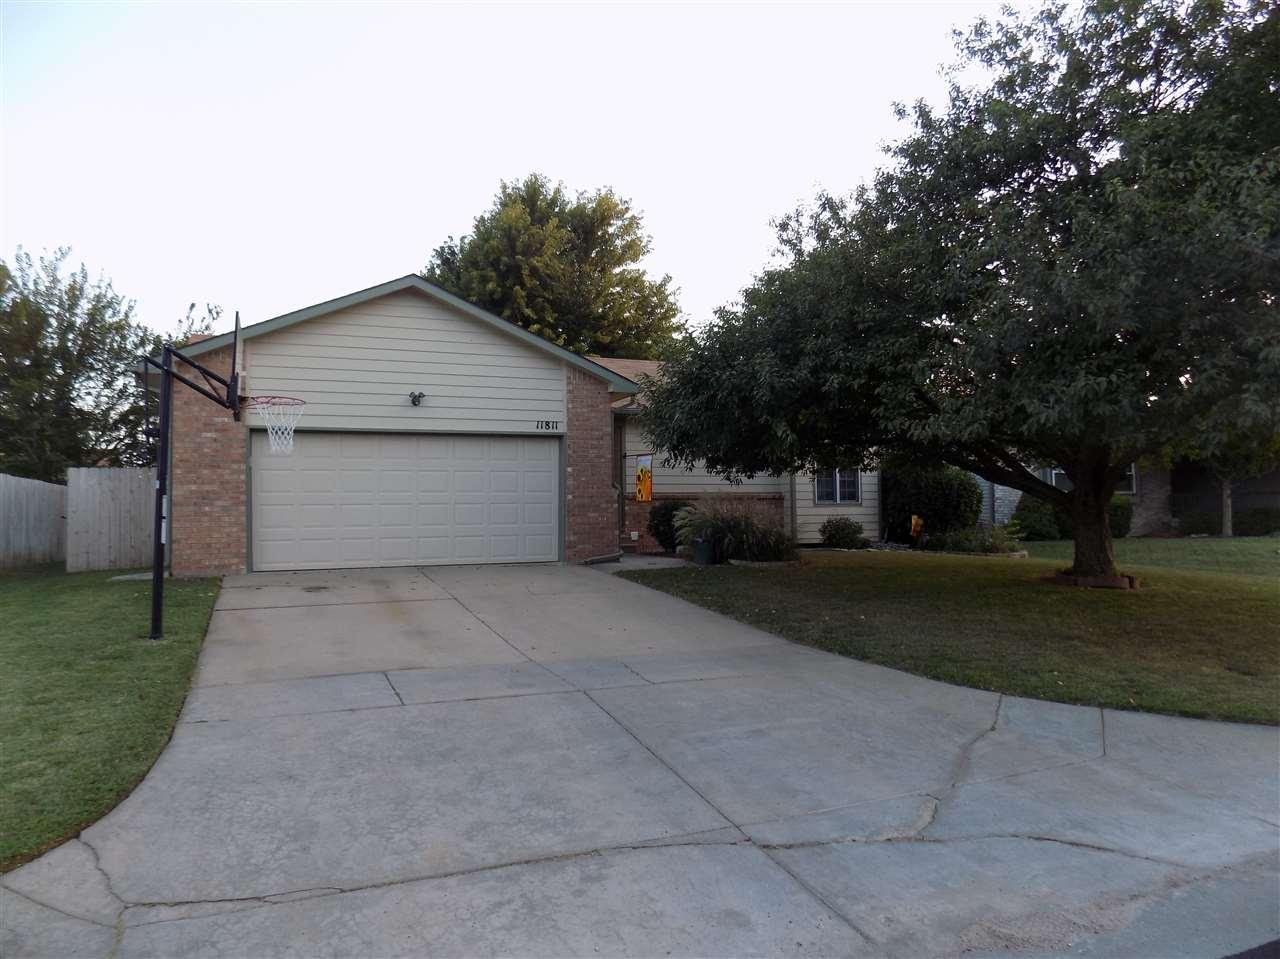 11811 W Bekemeyer St Wichita Ks Mls 541822 Better